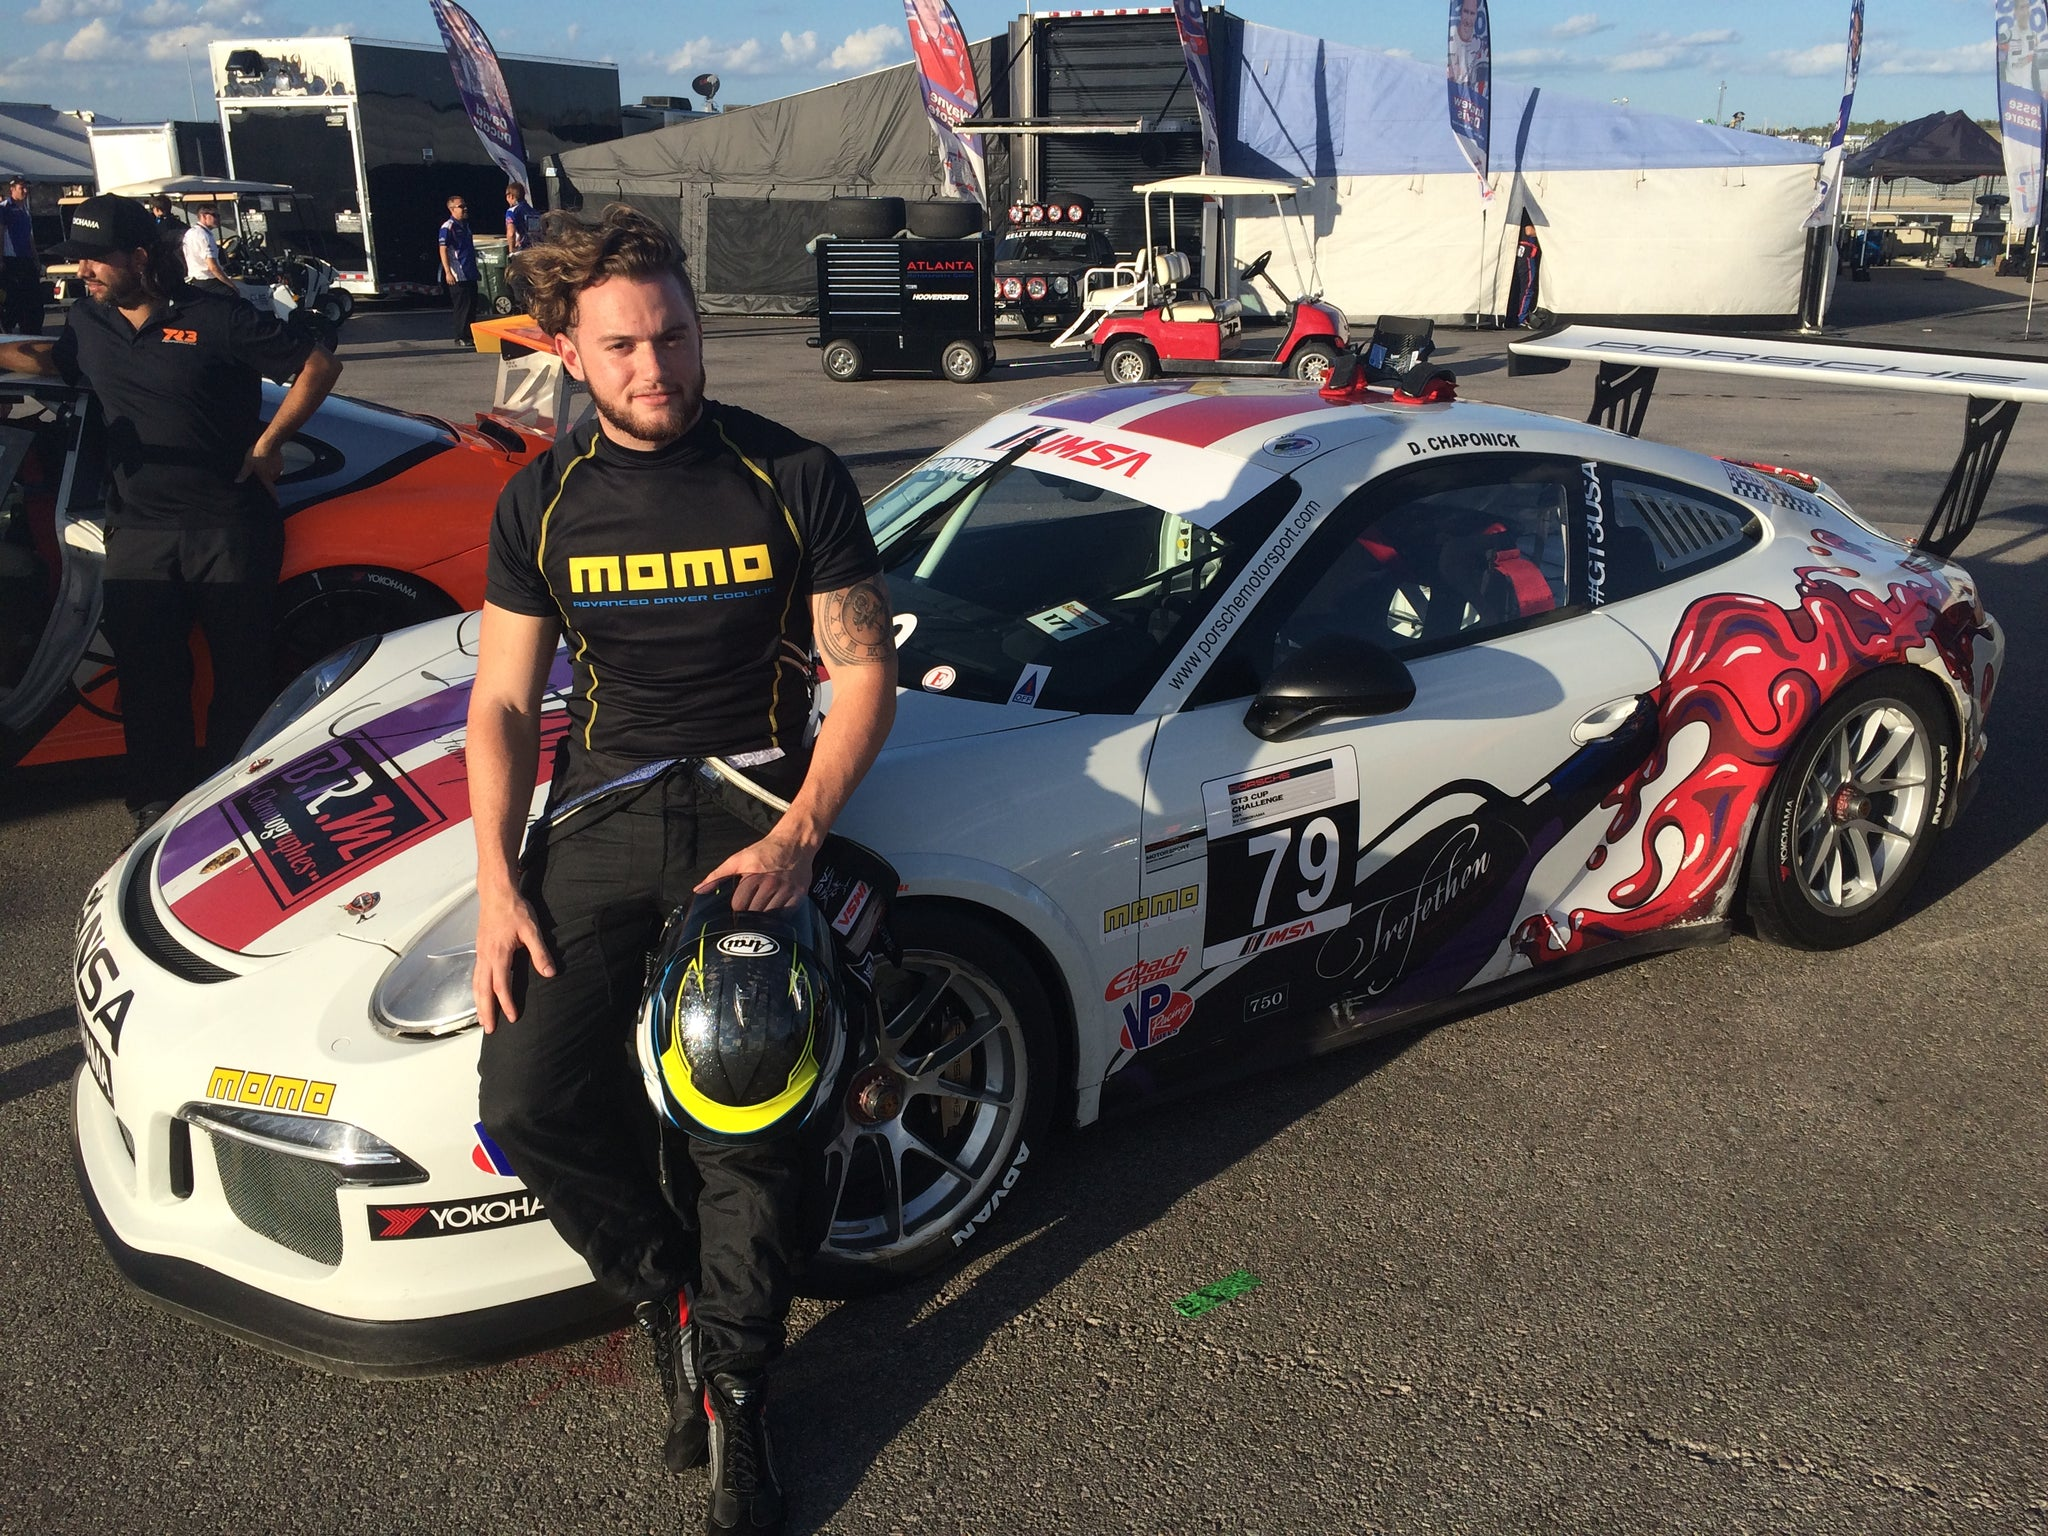 DORE CHAPONICK SCORED PROMISING RESULTS IN PORSCHE GT3 CUP CHALLENGE USA EVENT AT COTA